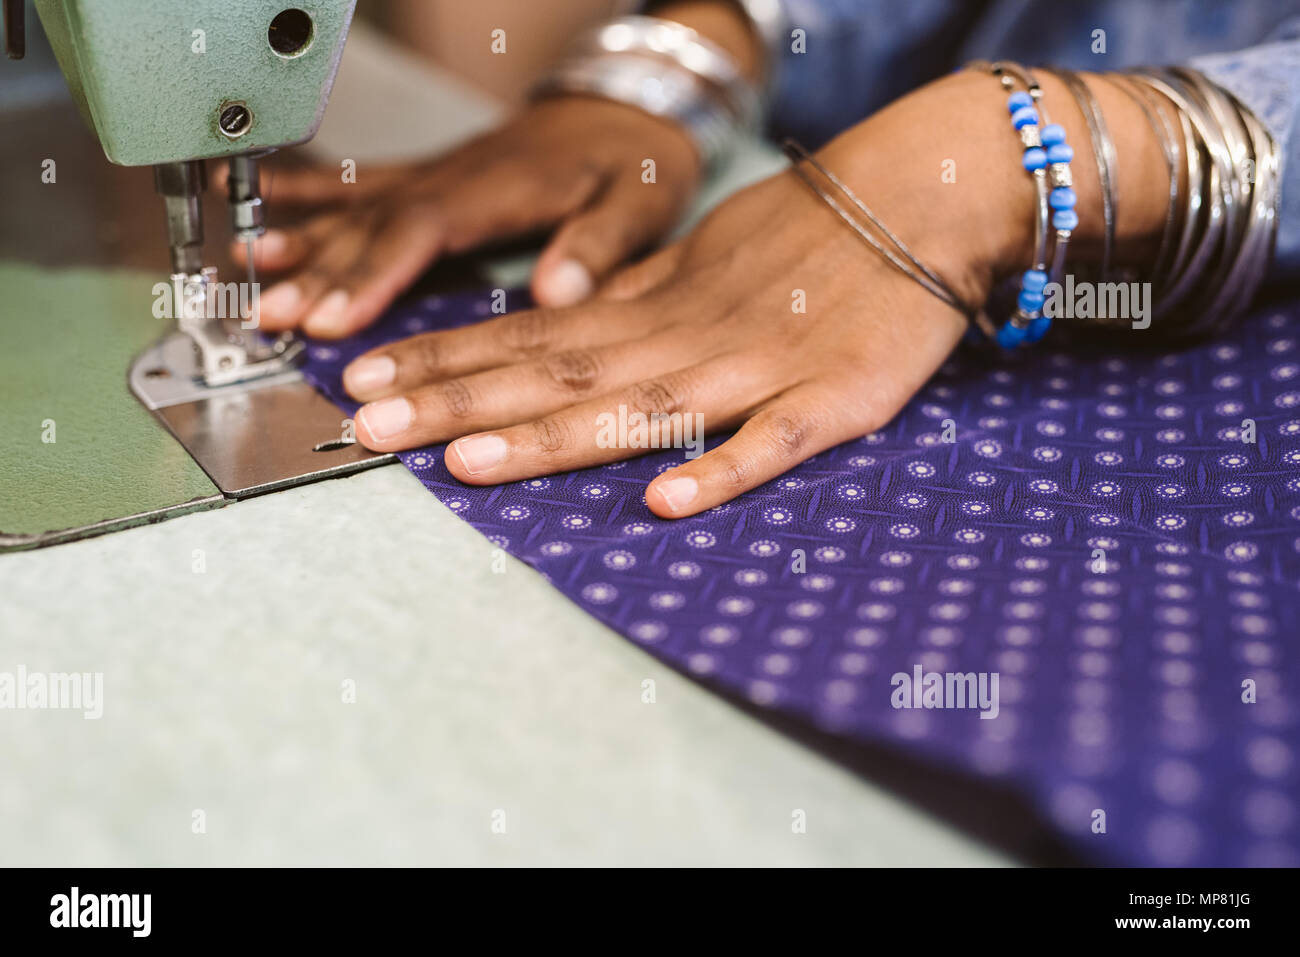 Closeup of a seamstress stitching cloth with her sewing machine - Stock Image